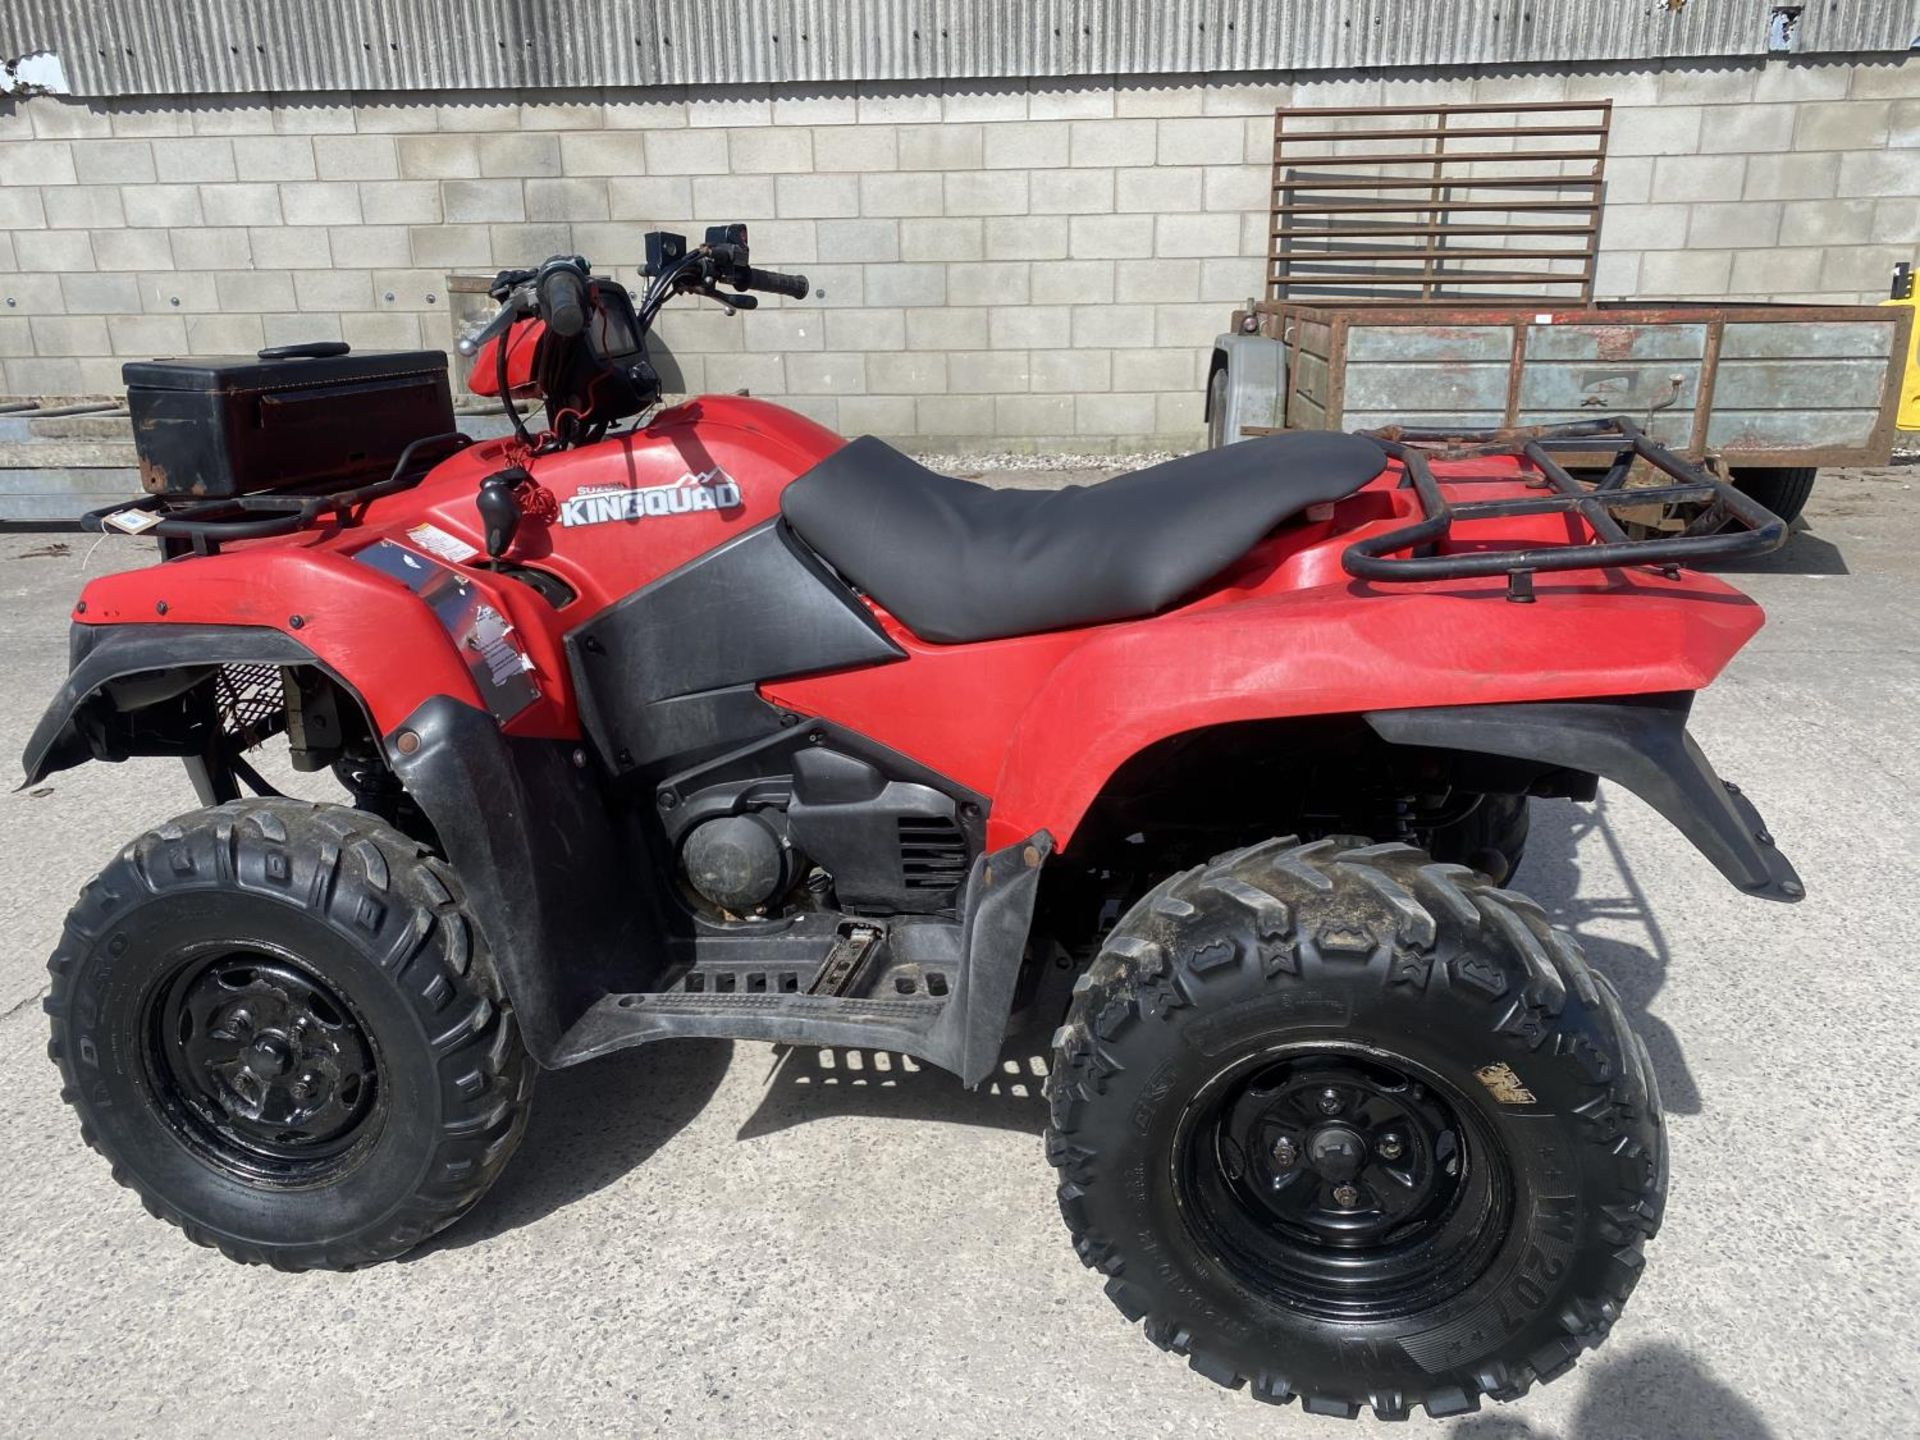 A 2014 SUZUKI KING QUAD, 500 CC WITH POWER STEERING - SEE VIDEO OF VEHICLE STARTING AND RUNNING AT